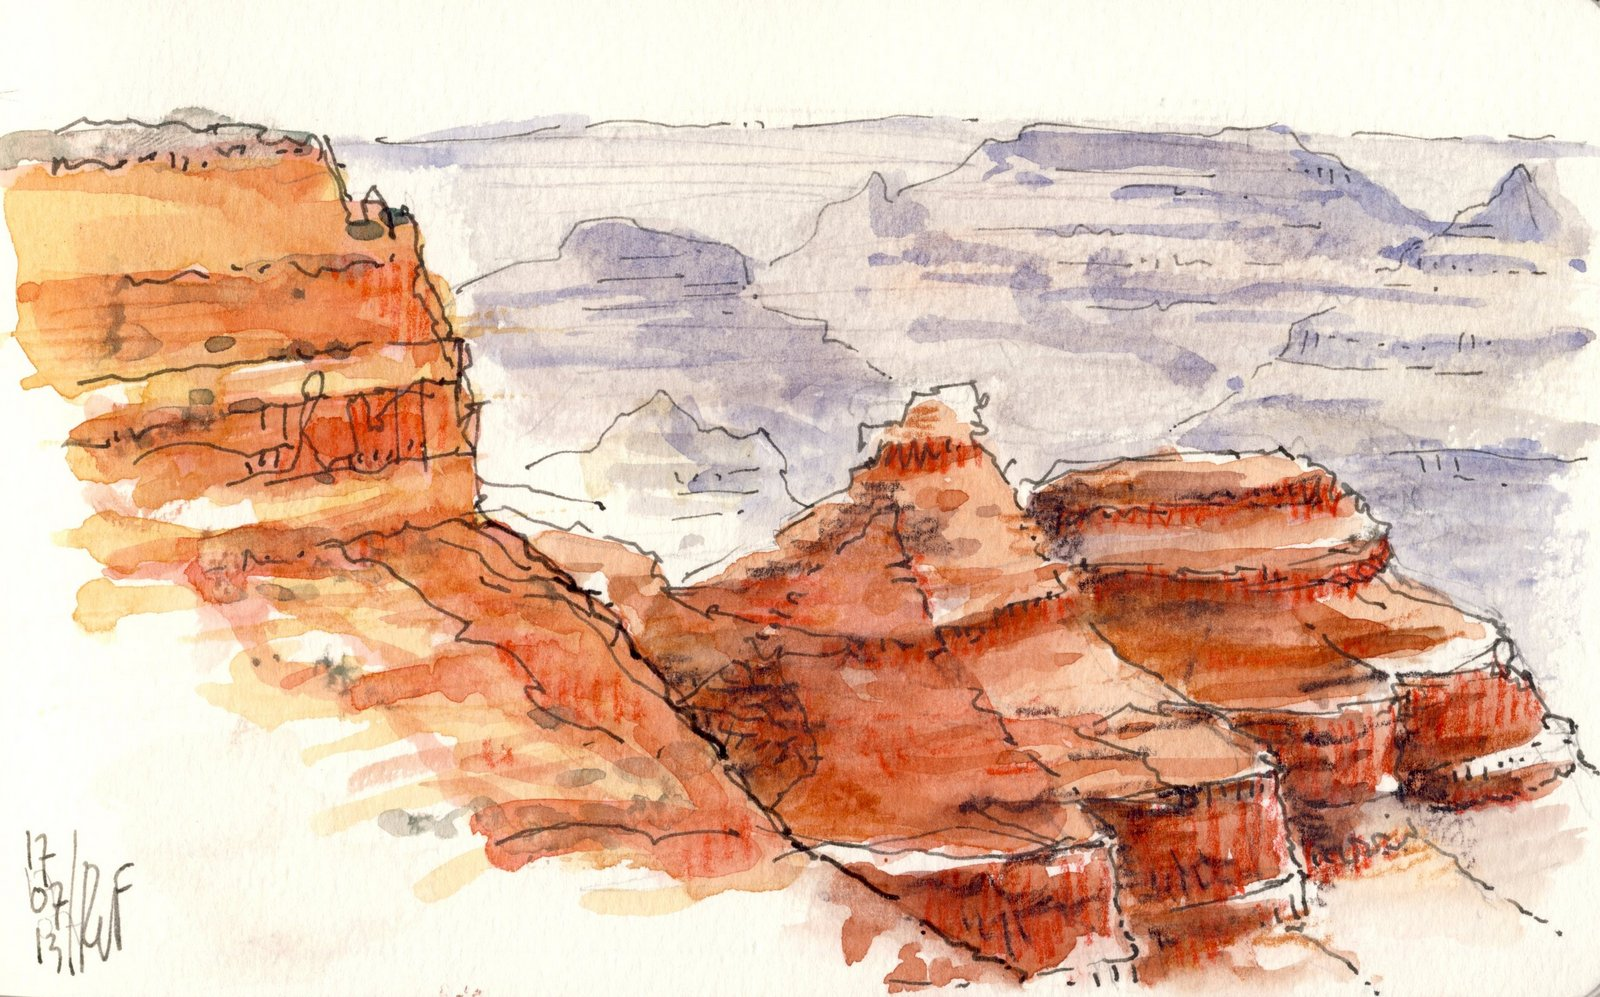 1600x997 Rene Fijten Sketches Grand Canyon !